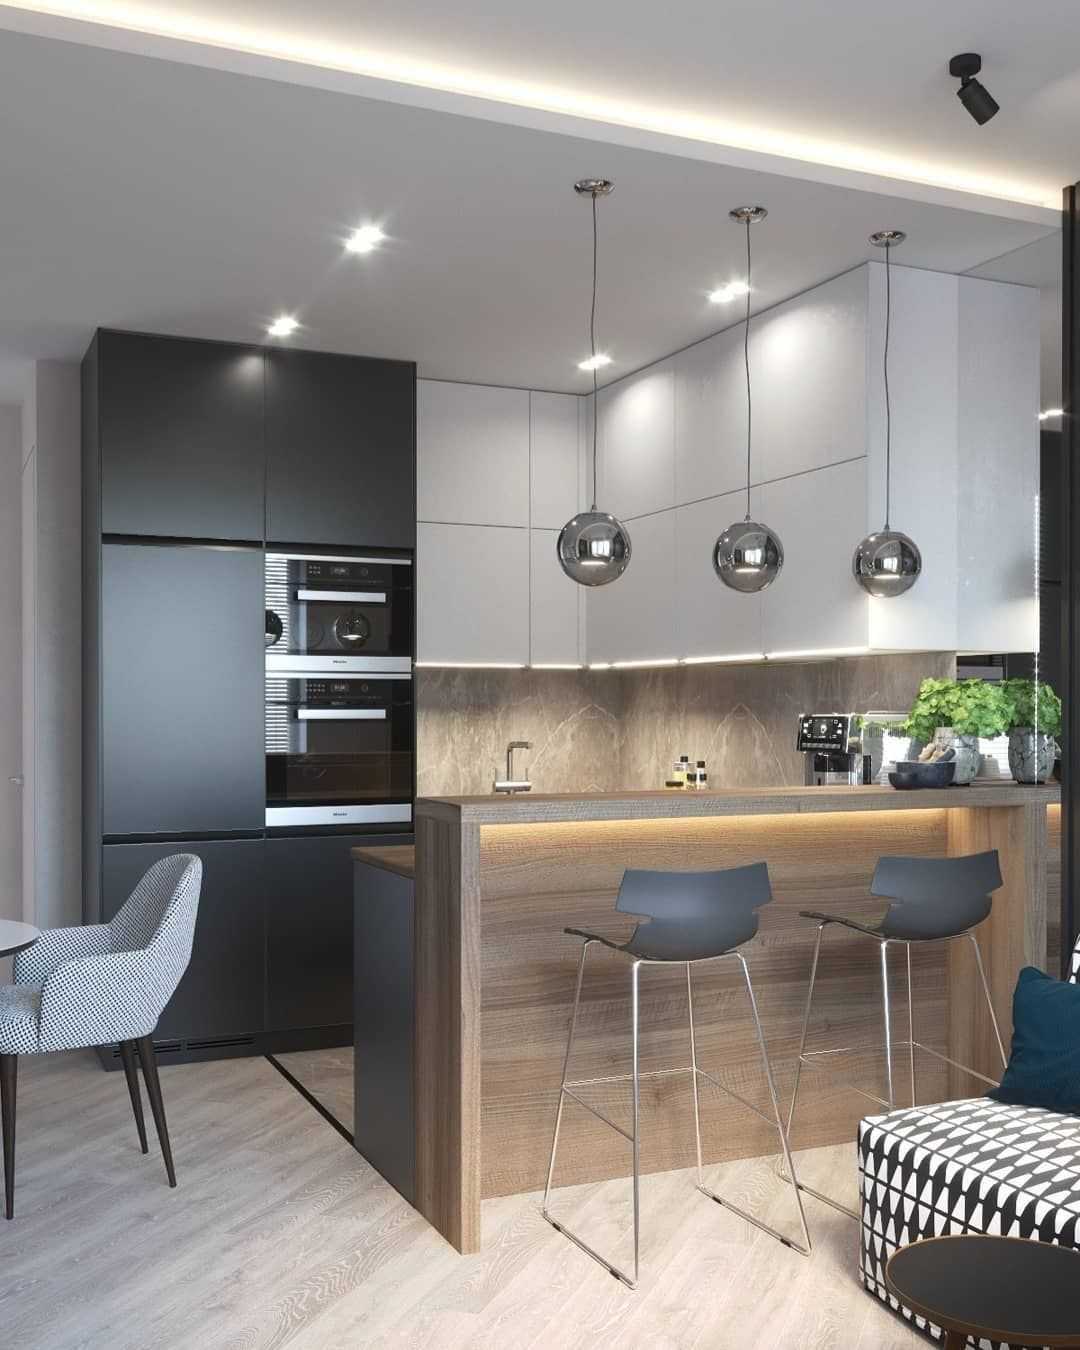 Are You Dreaming About Having A Unique Kitchen That Can Be The Center Of Attention In Yo Kitchen Interior Design Modern Kitchen Design Modern Kitchen Interiors